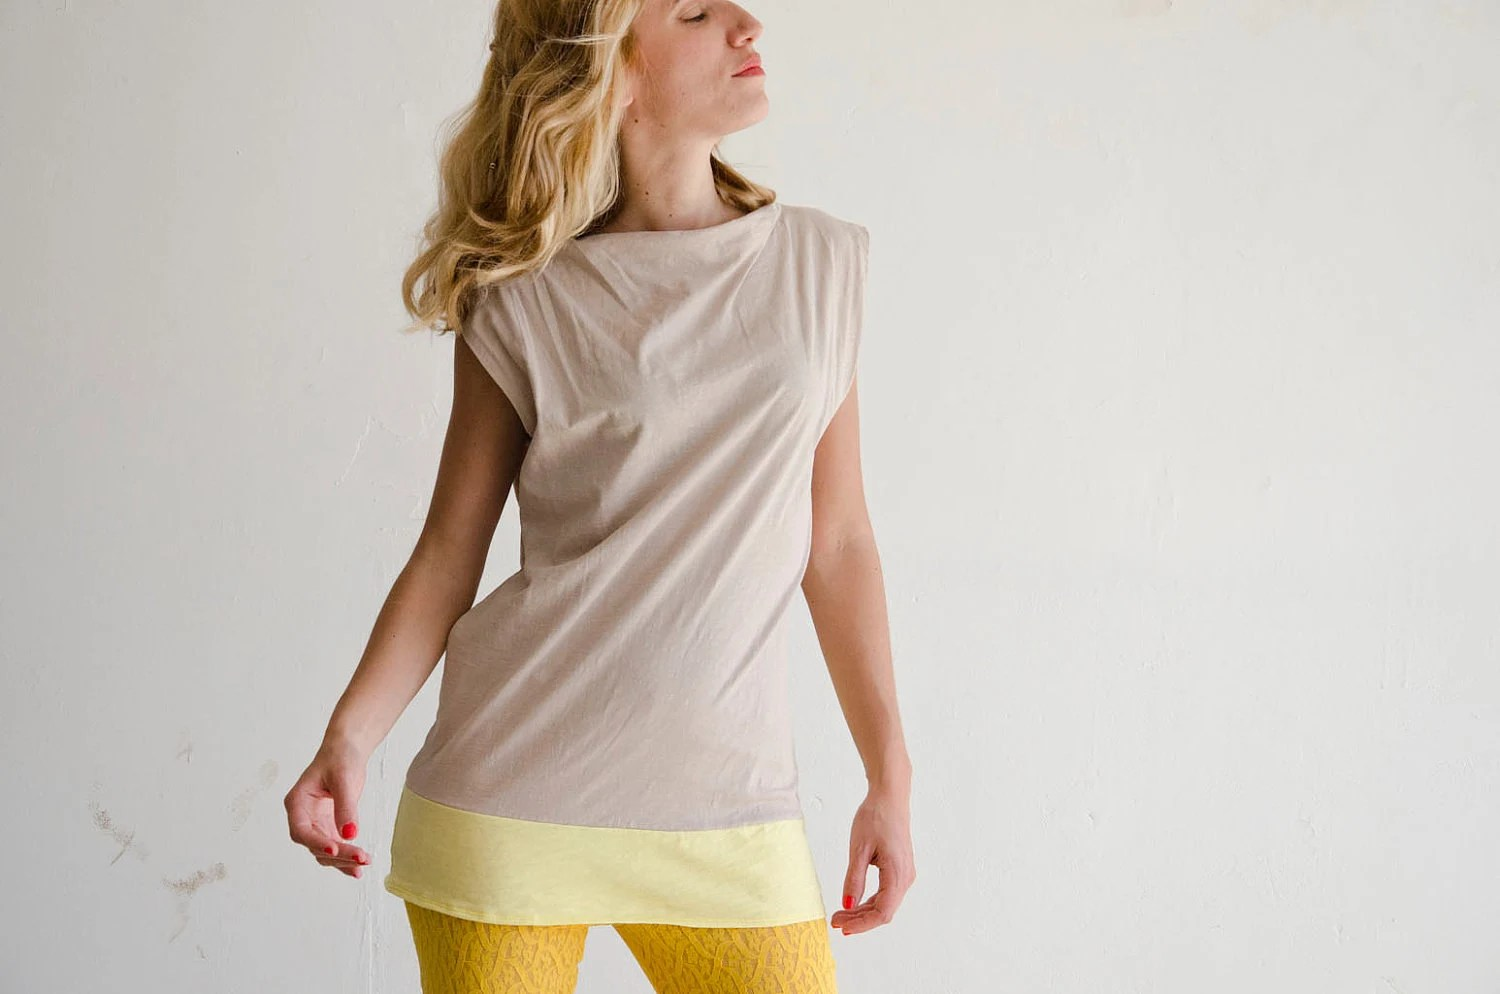 Cotton Jersey Top in Oatmeal and Yellow, Color block Mini Dress, Handmade - karmologyclinic